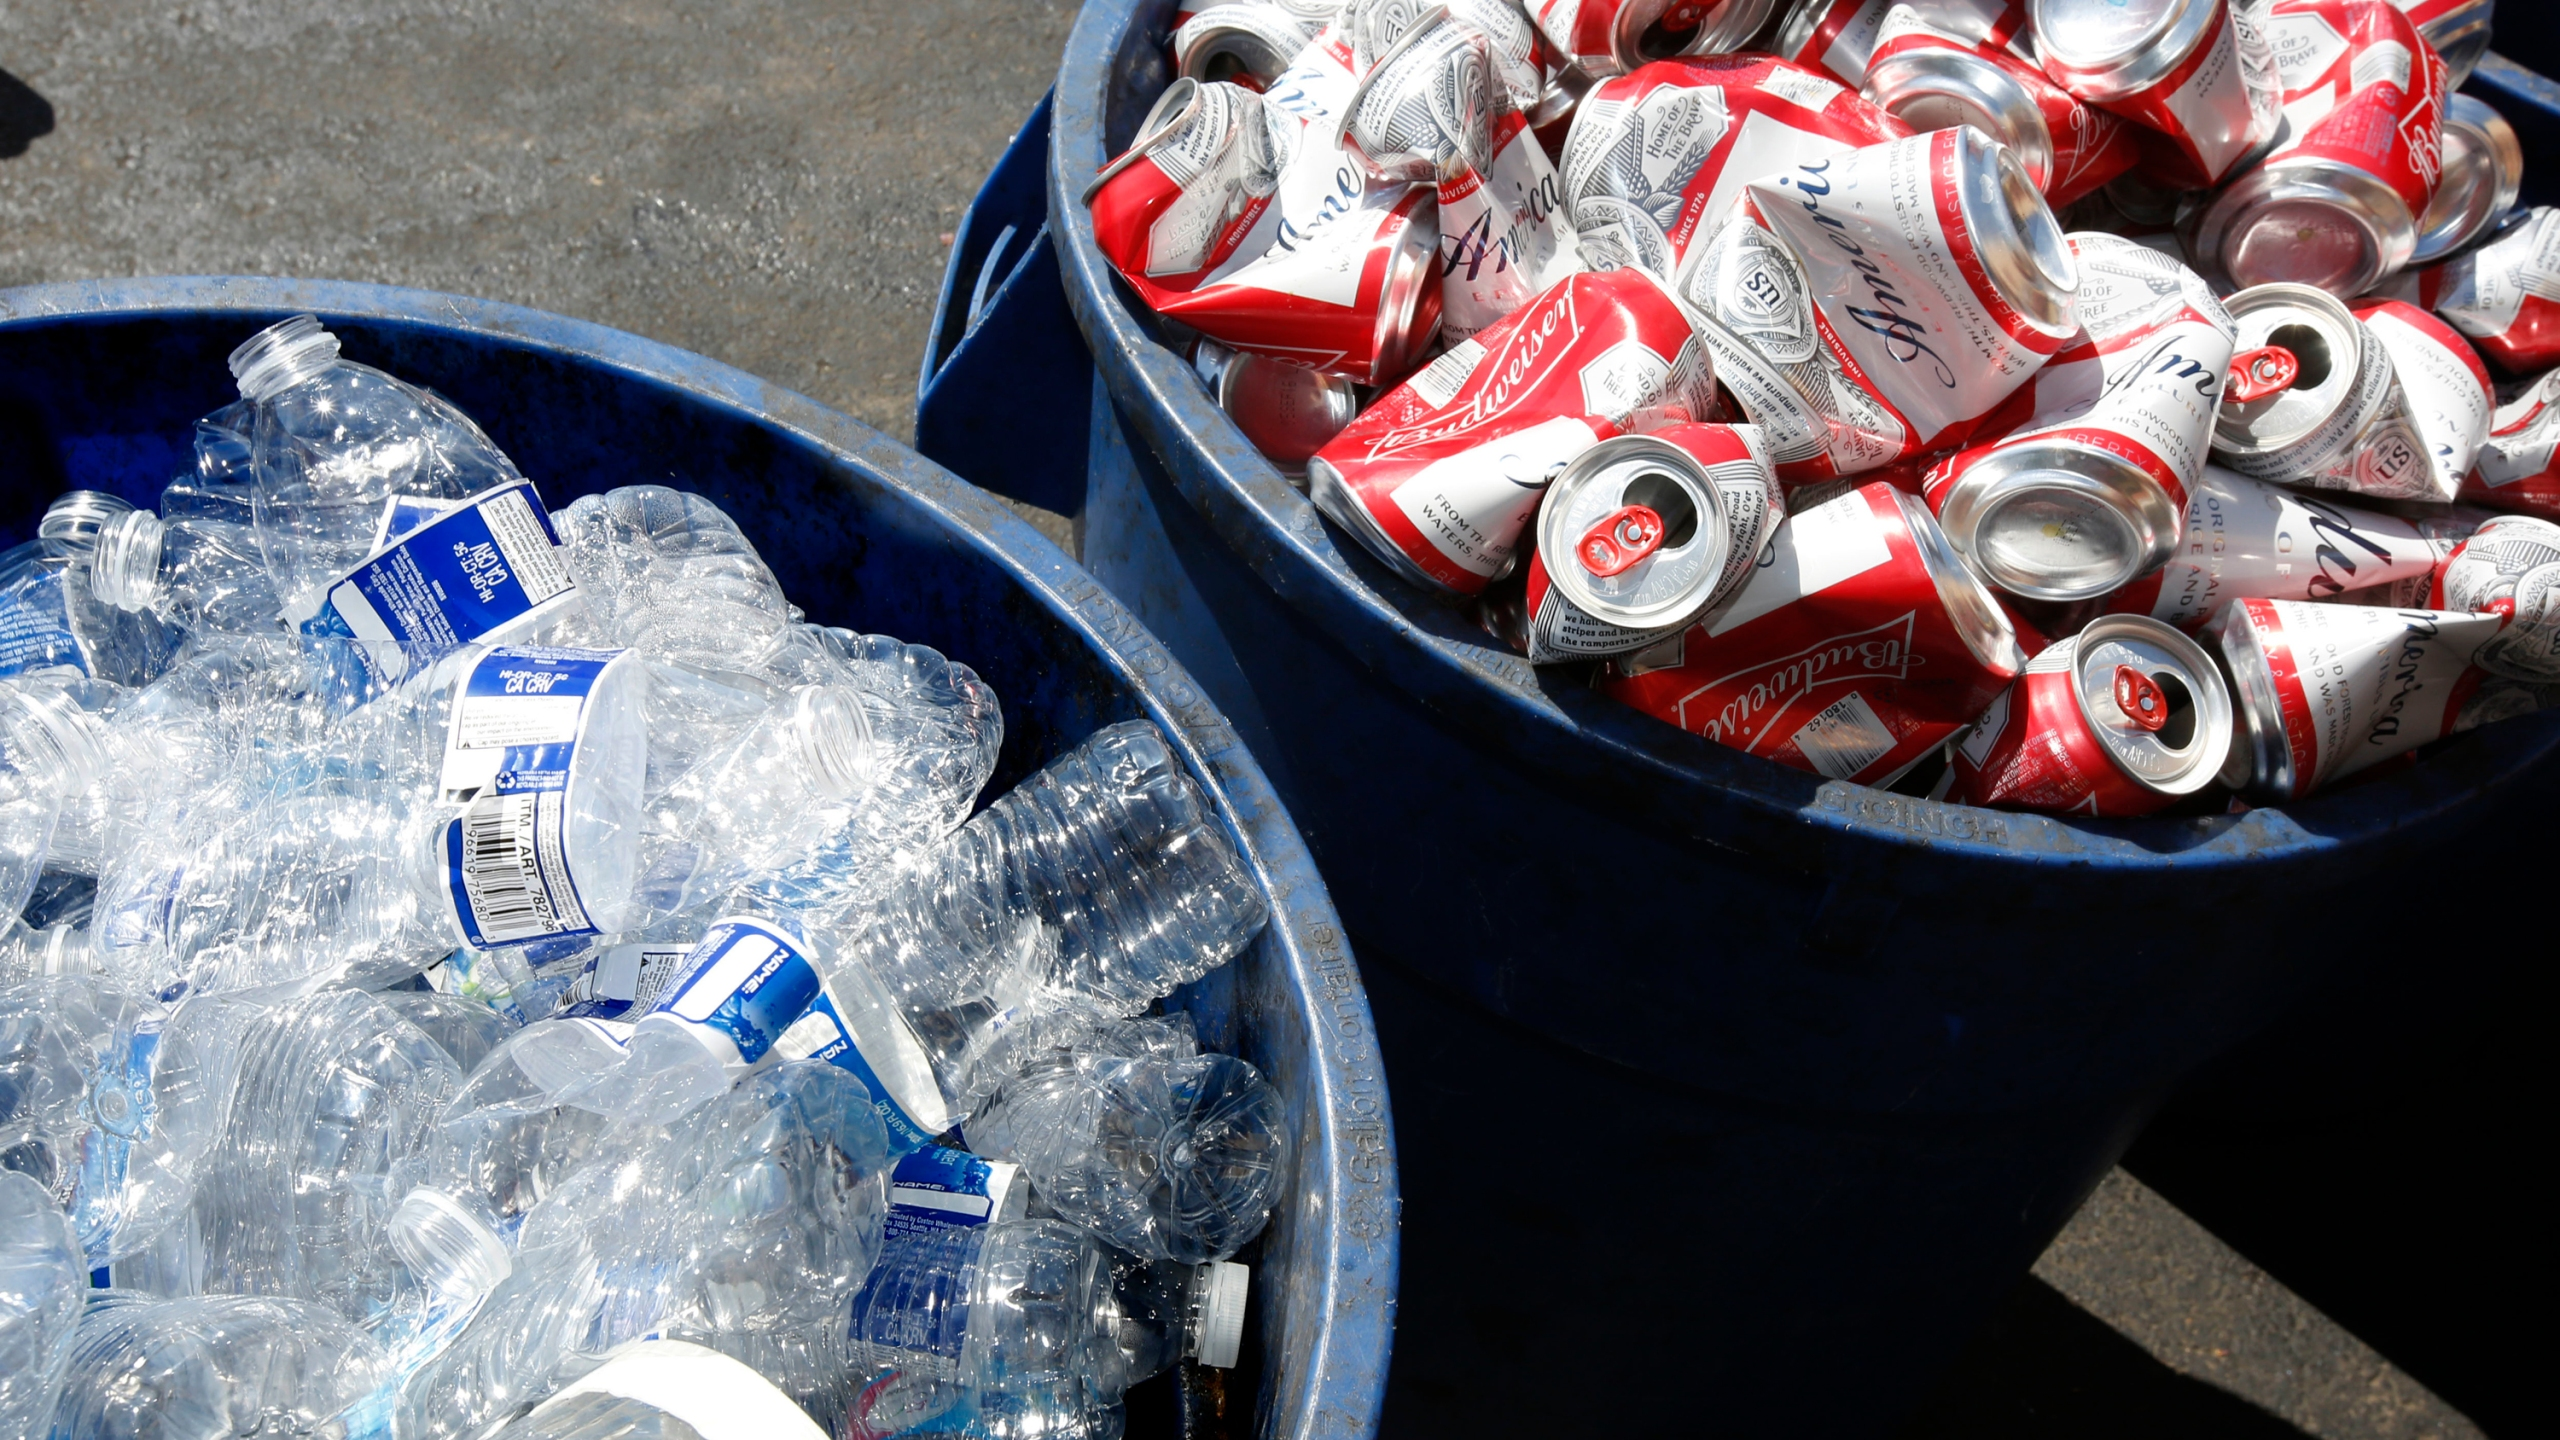 Cans and plastic bottles brought in for recycling are seen at a recycling center in Sacramento on July 5, 2016. (Rich Pedroncelli / Associated Press)